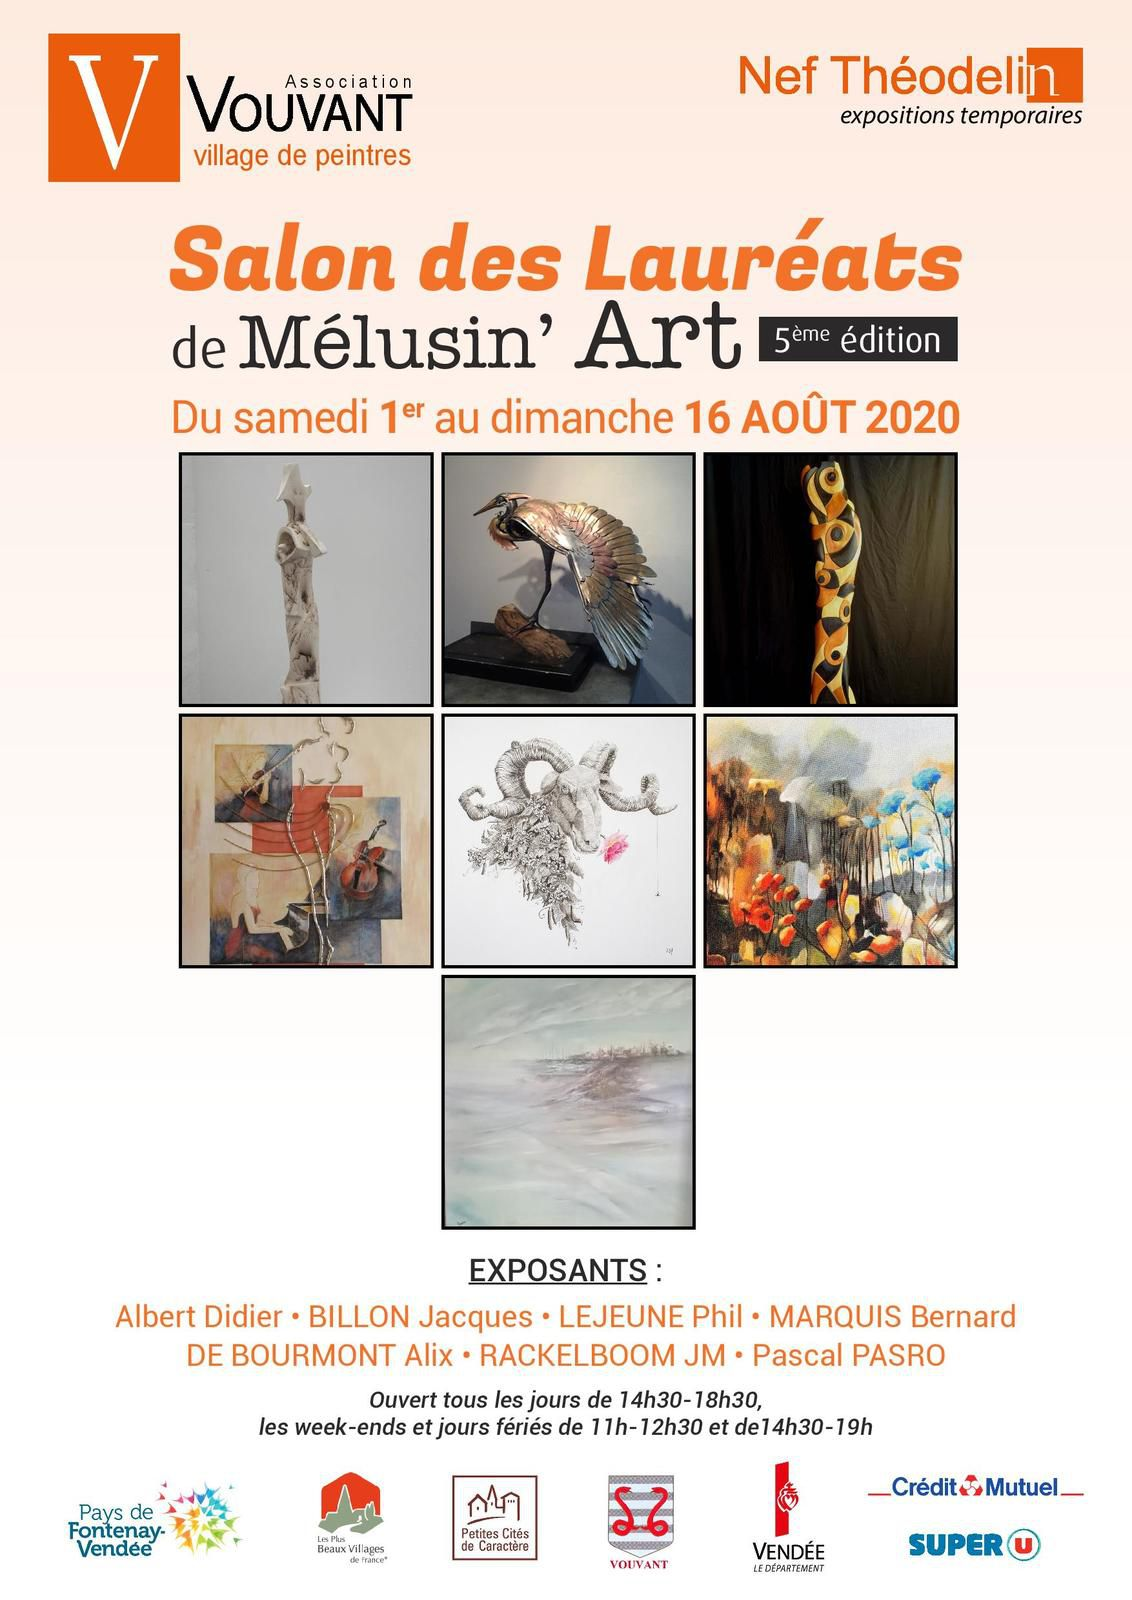 Salon des Lauréats de Melusin'Art, 5eme Edition